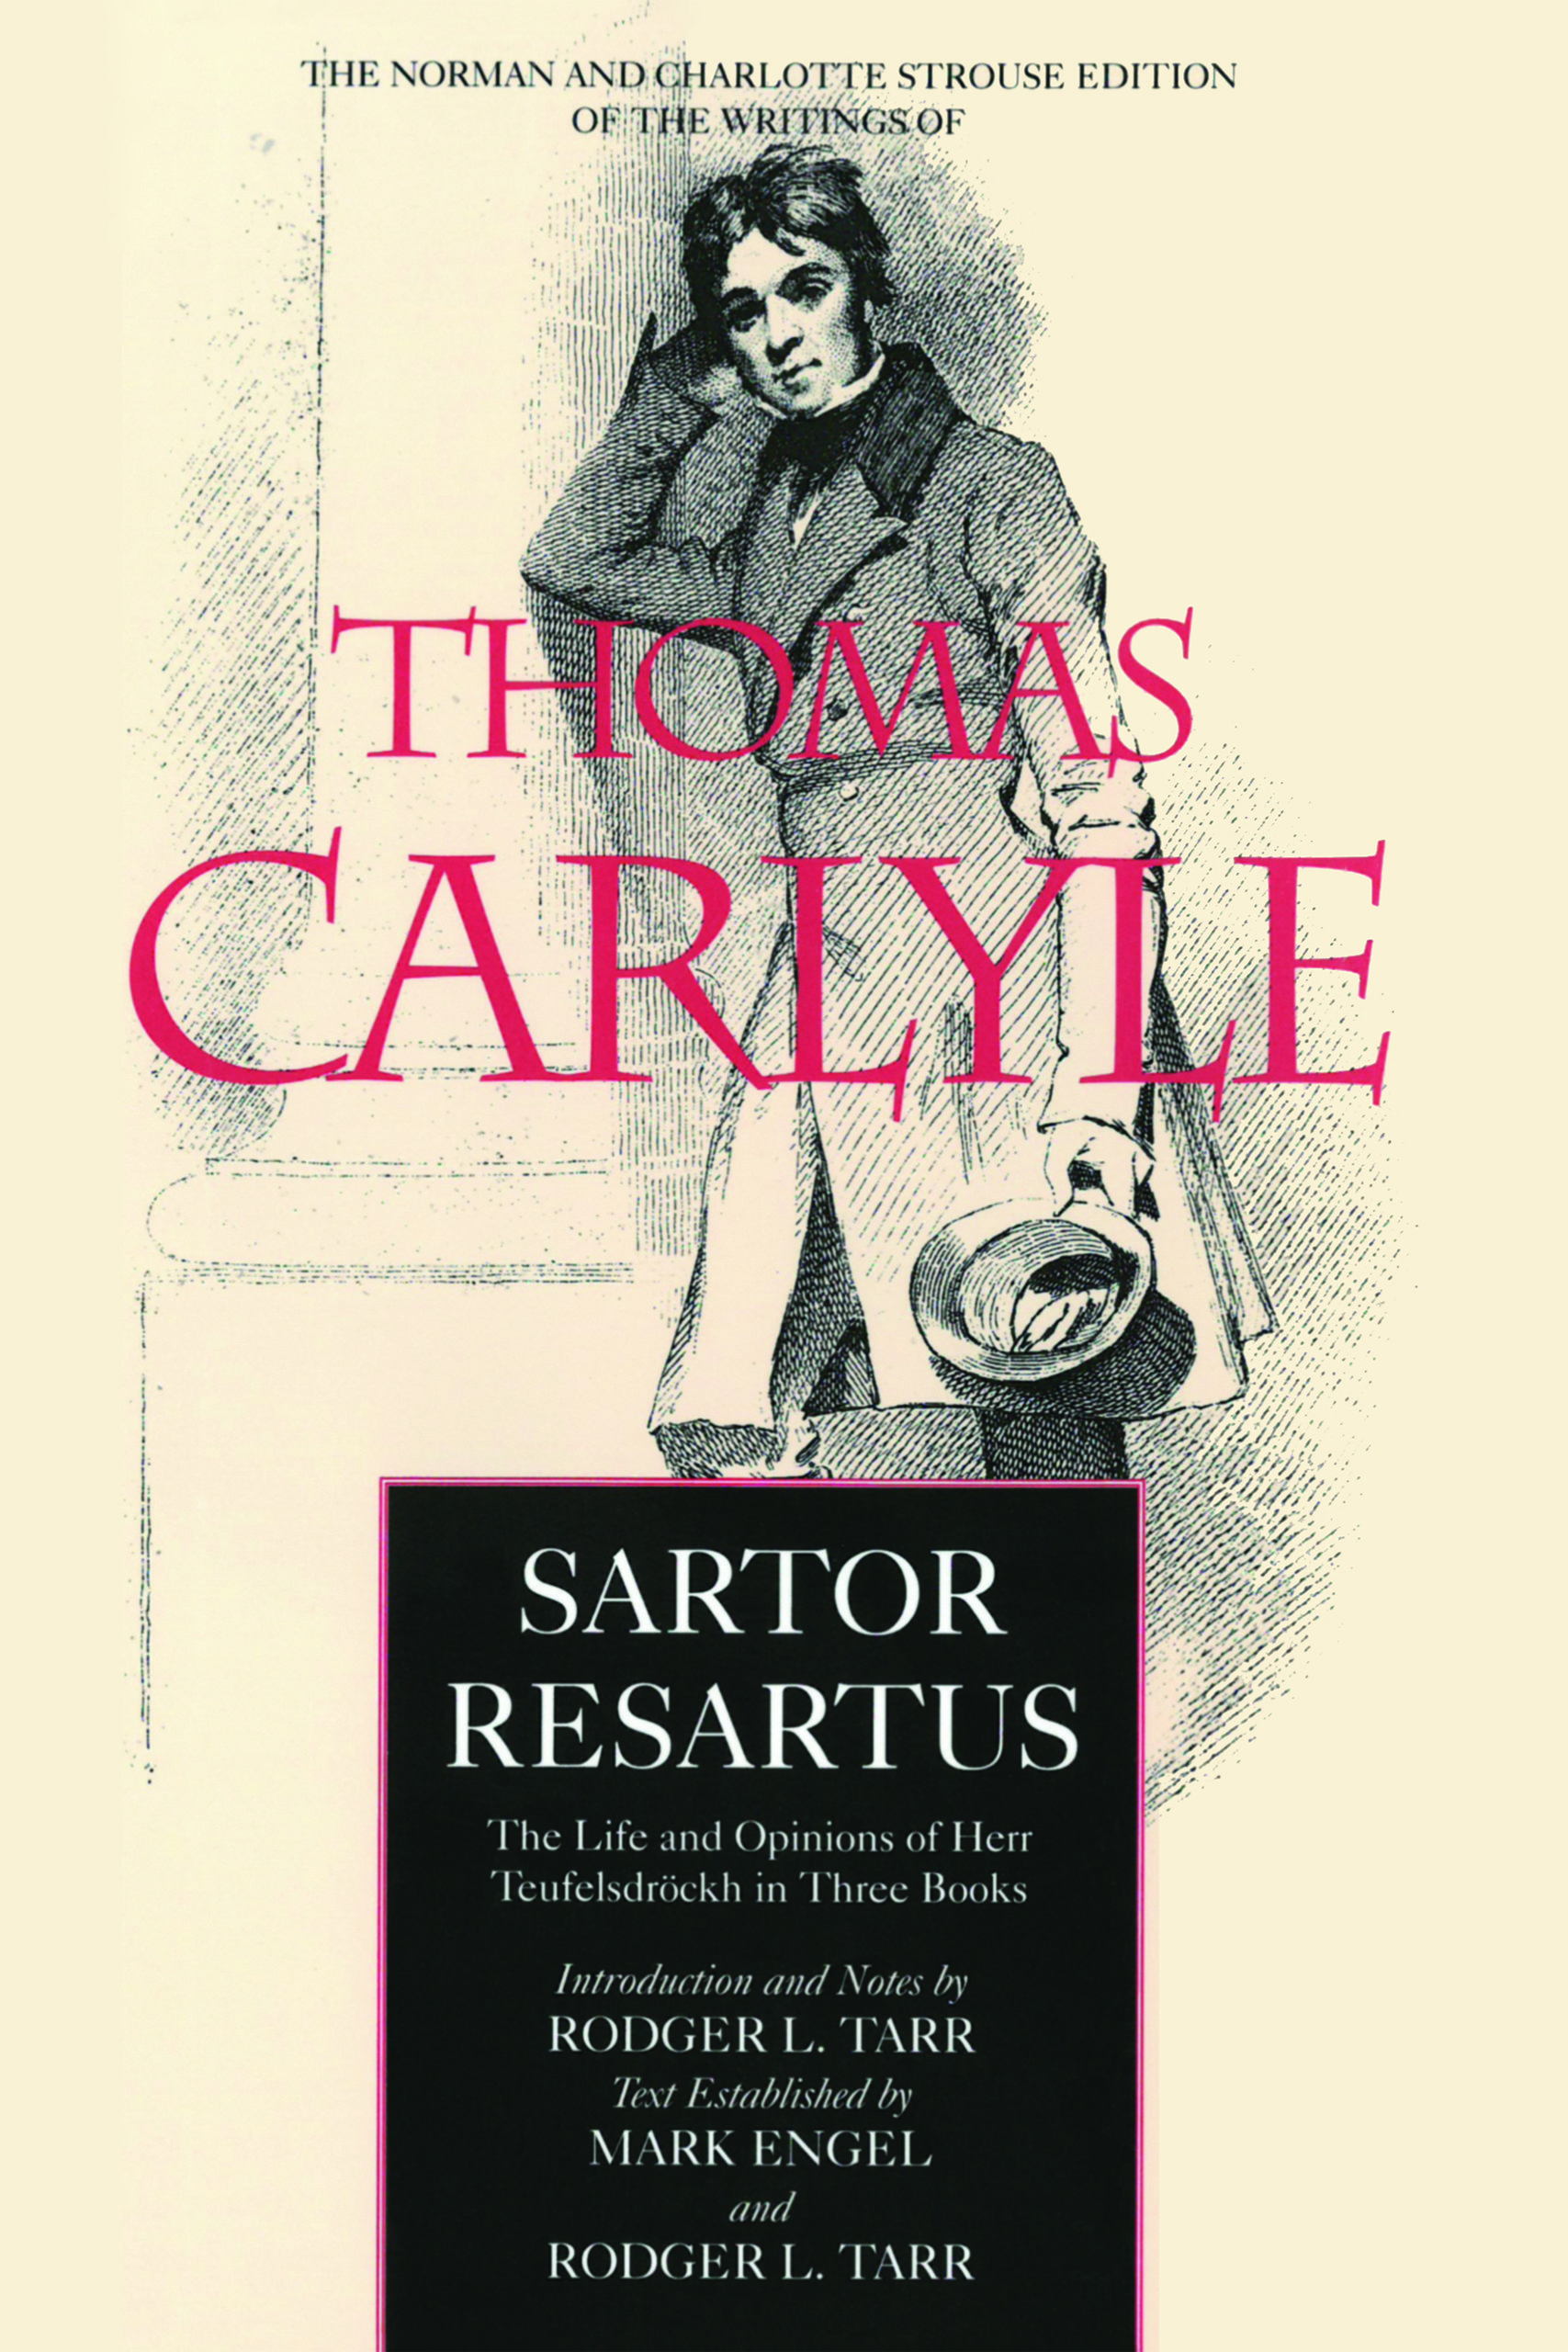 carlyle charlotte edition essay historical norman strouse thomas writings Buy historical essays (norman & charlotte strouse edition of the writings of thomas the norman and charlotte strouse edition of the writings of thomas carlyle.